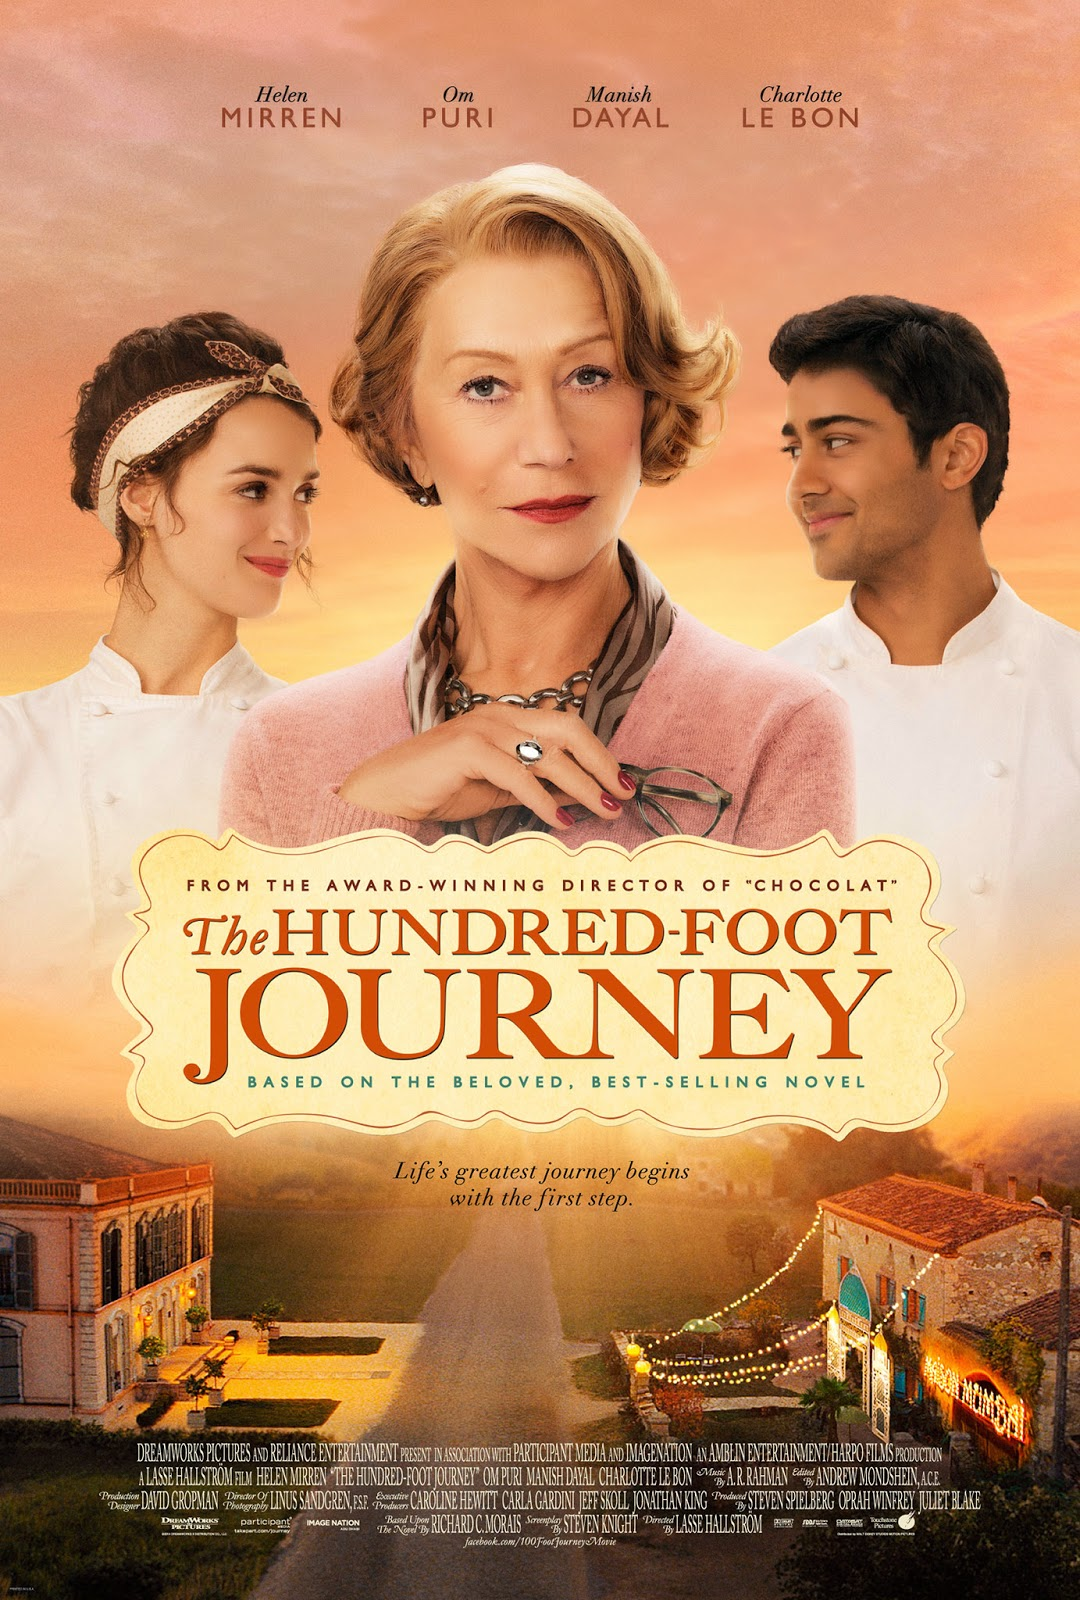 #100FootJourney #FoodieFriday